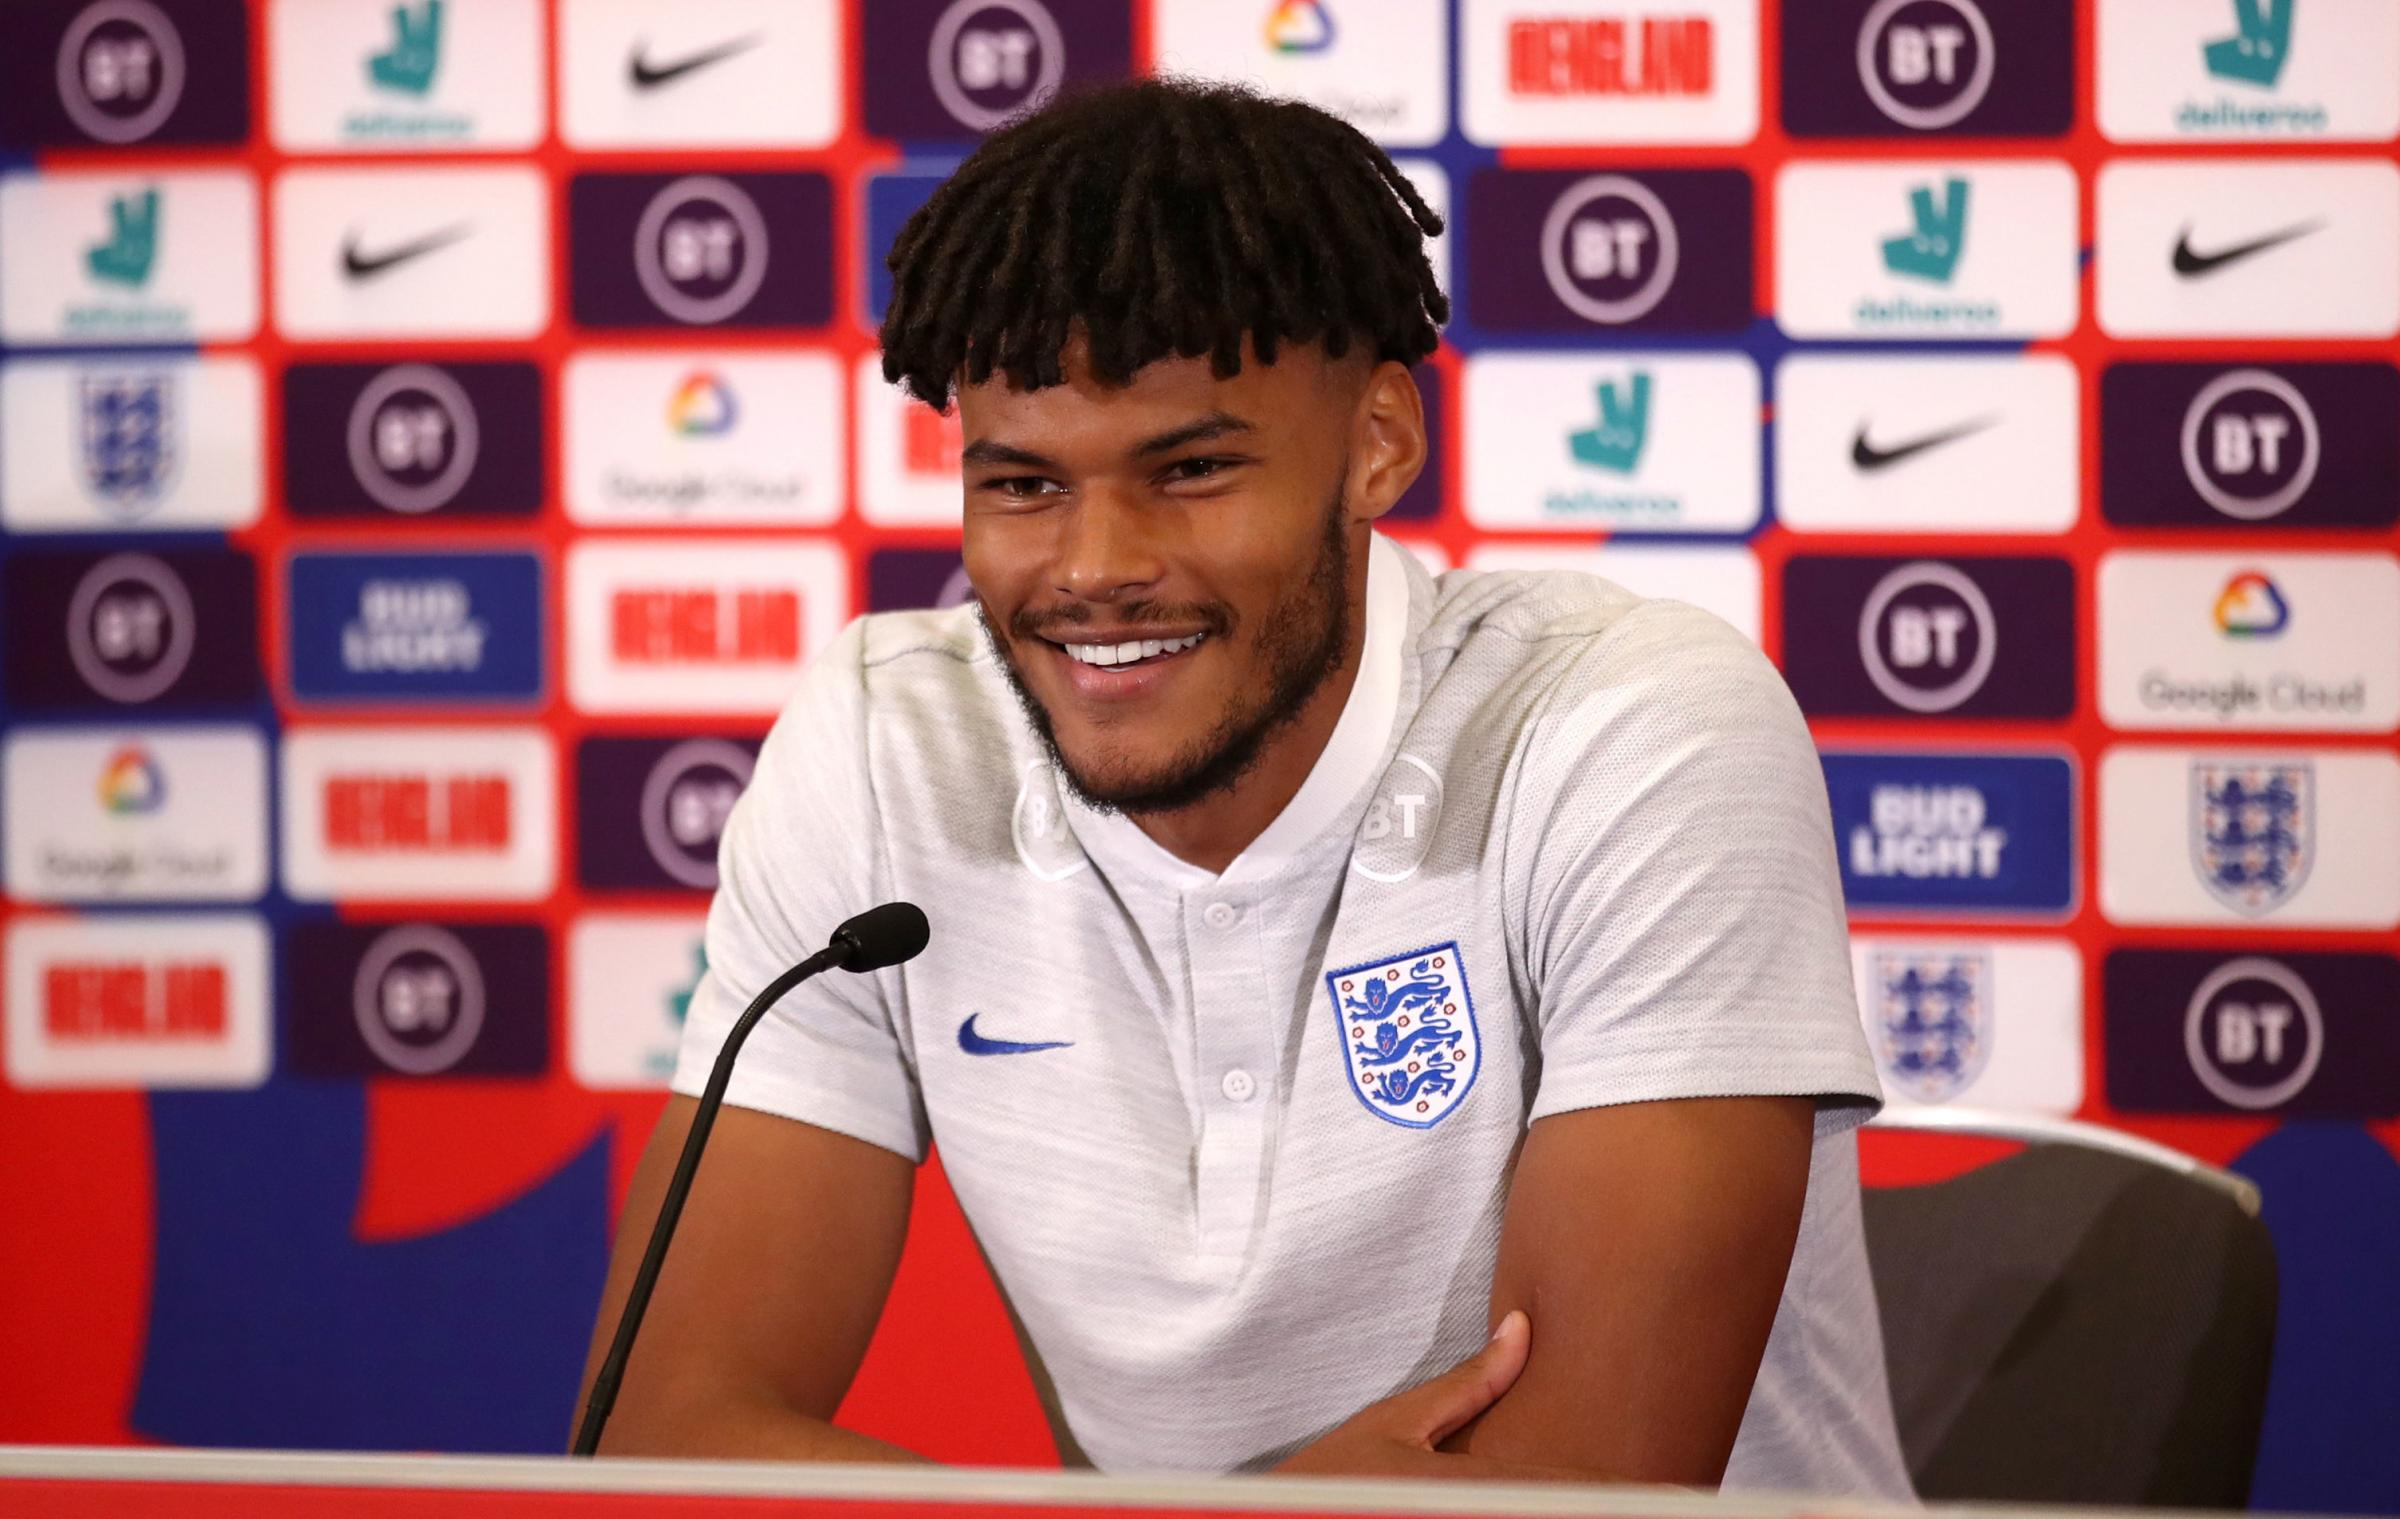 AFC Bournemouth set for Aston Villa payment after Tyrone Mings made England debut, claims report